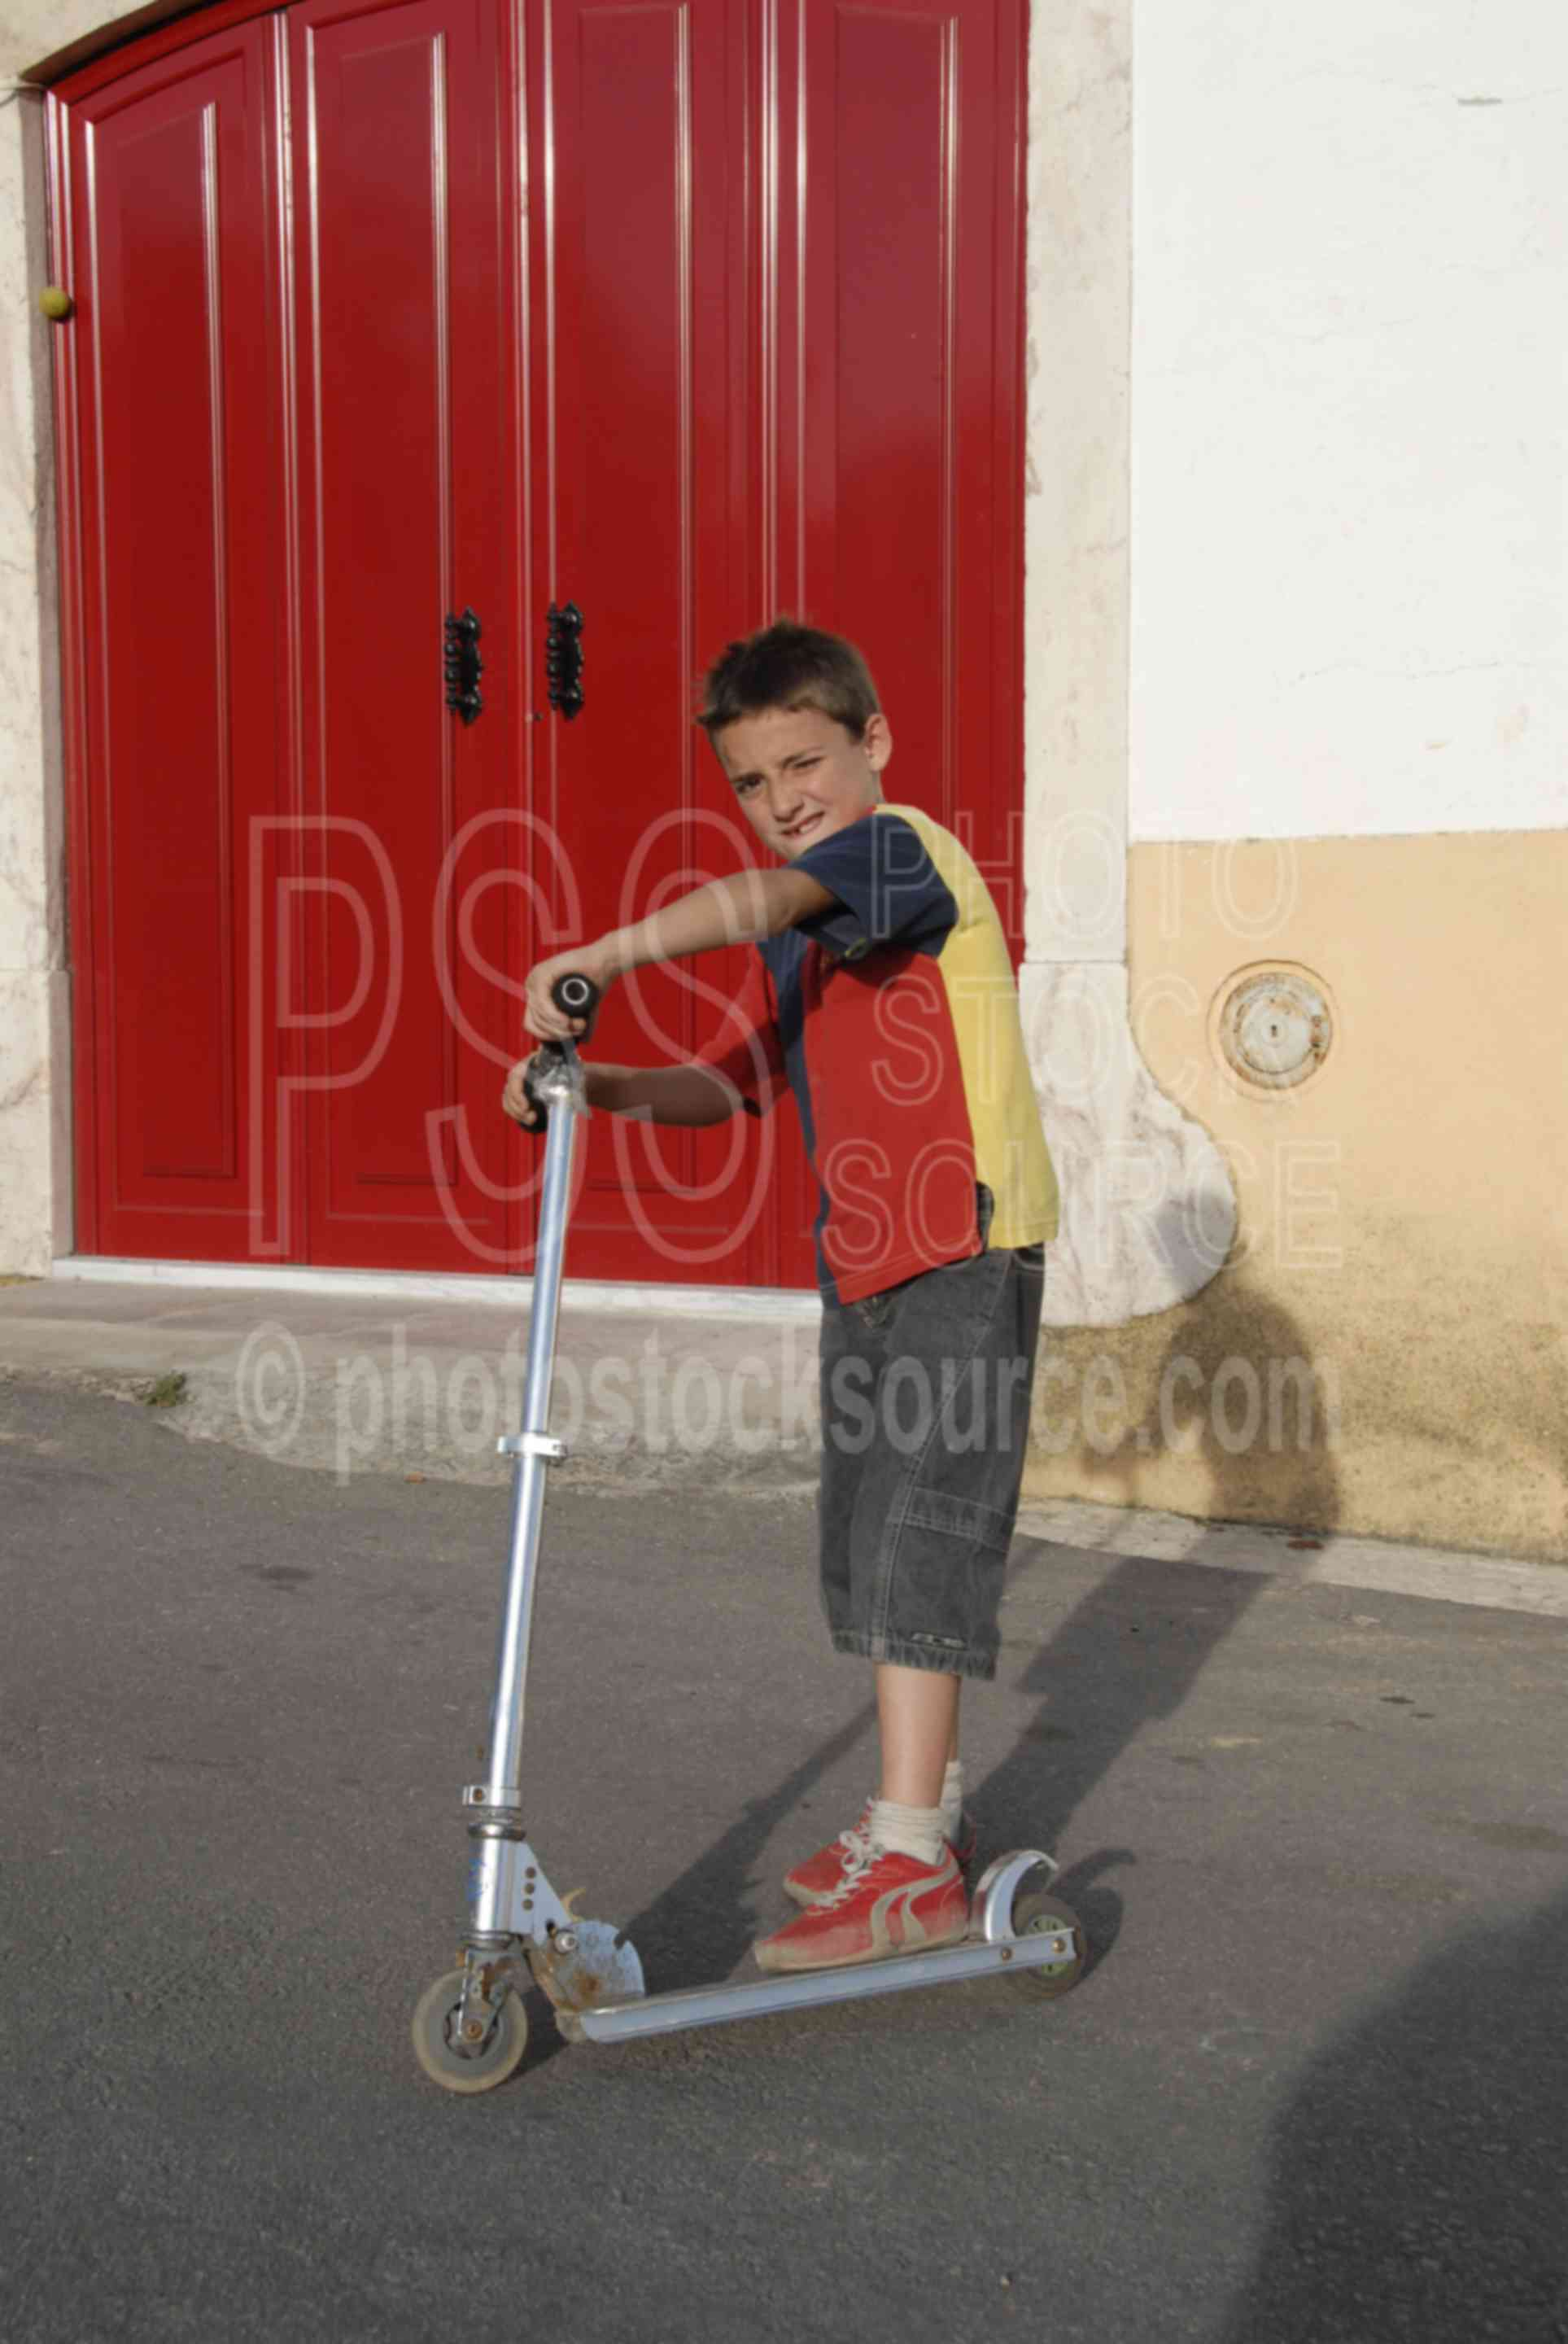 Boy on Scooter,boys,young,play,playing,scooter,children